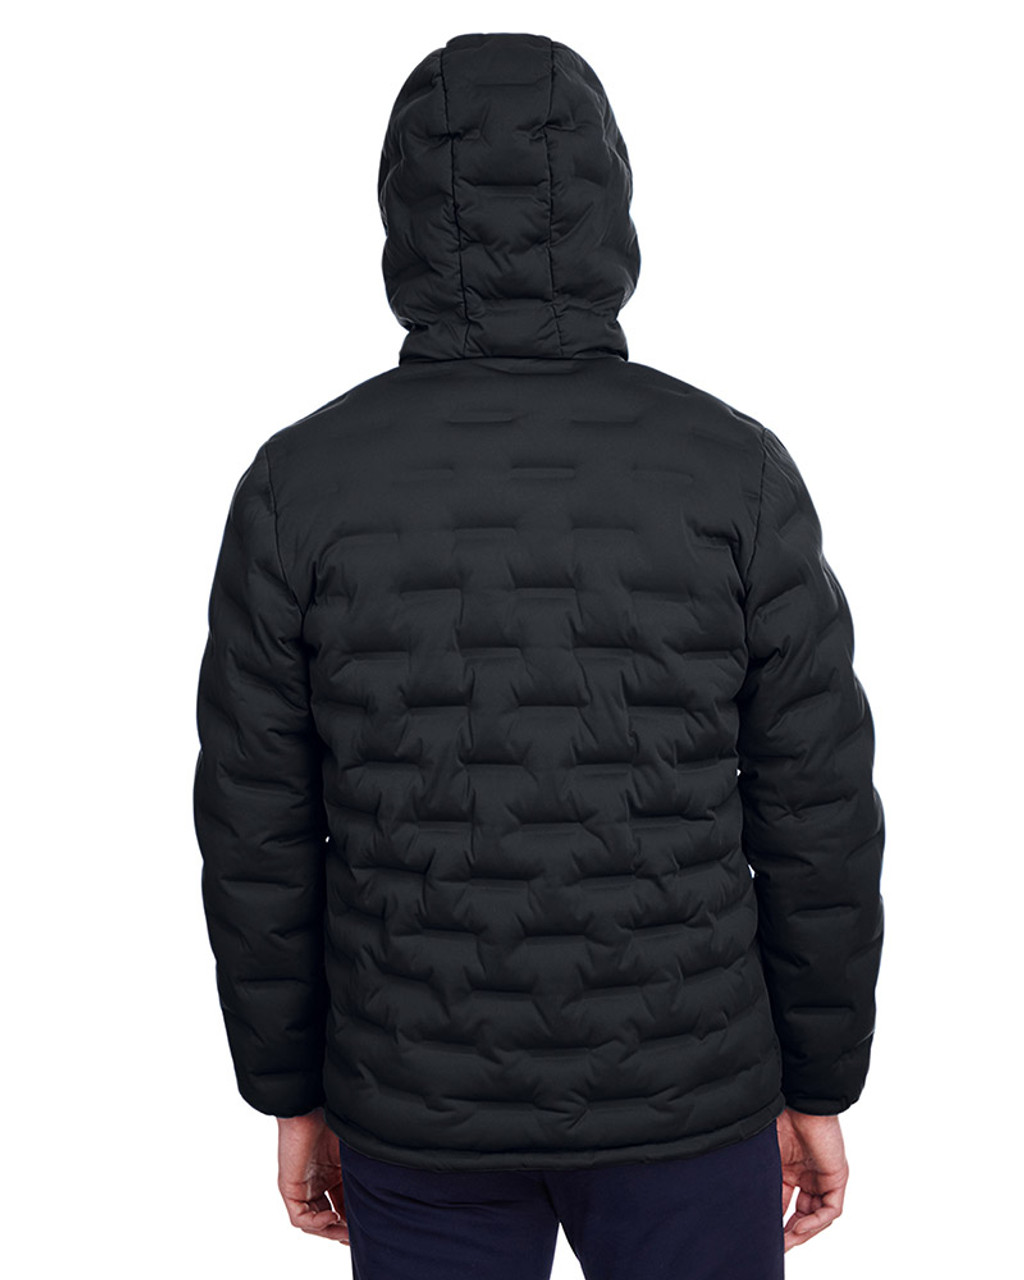 Black/Carbon - back, NE708 North End Men's Loft Puffer Jacket | Blankclothing.ca